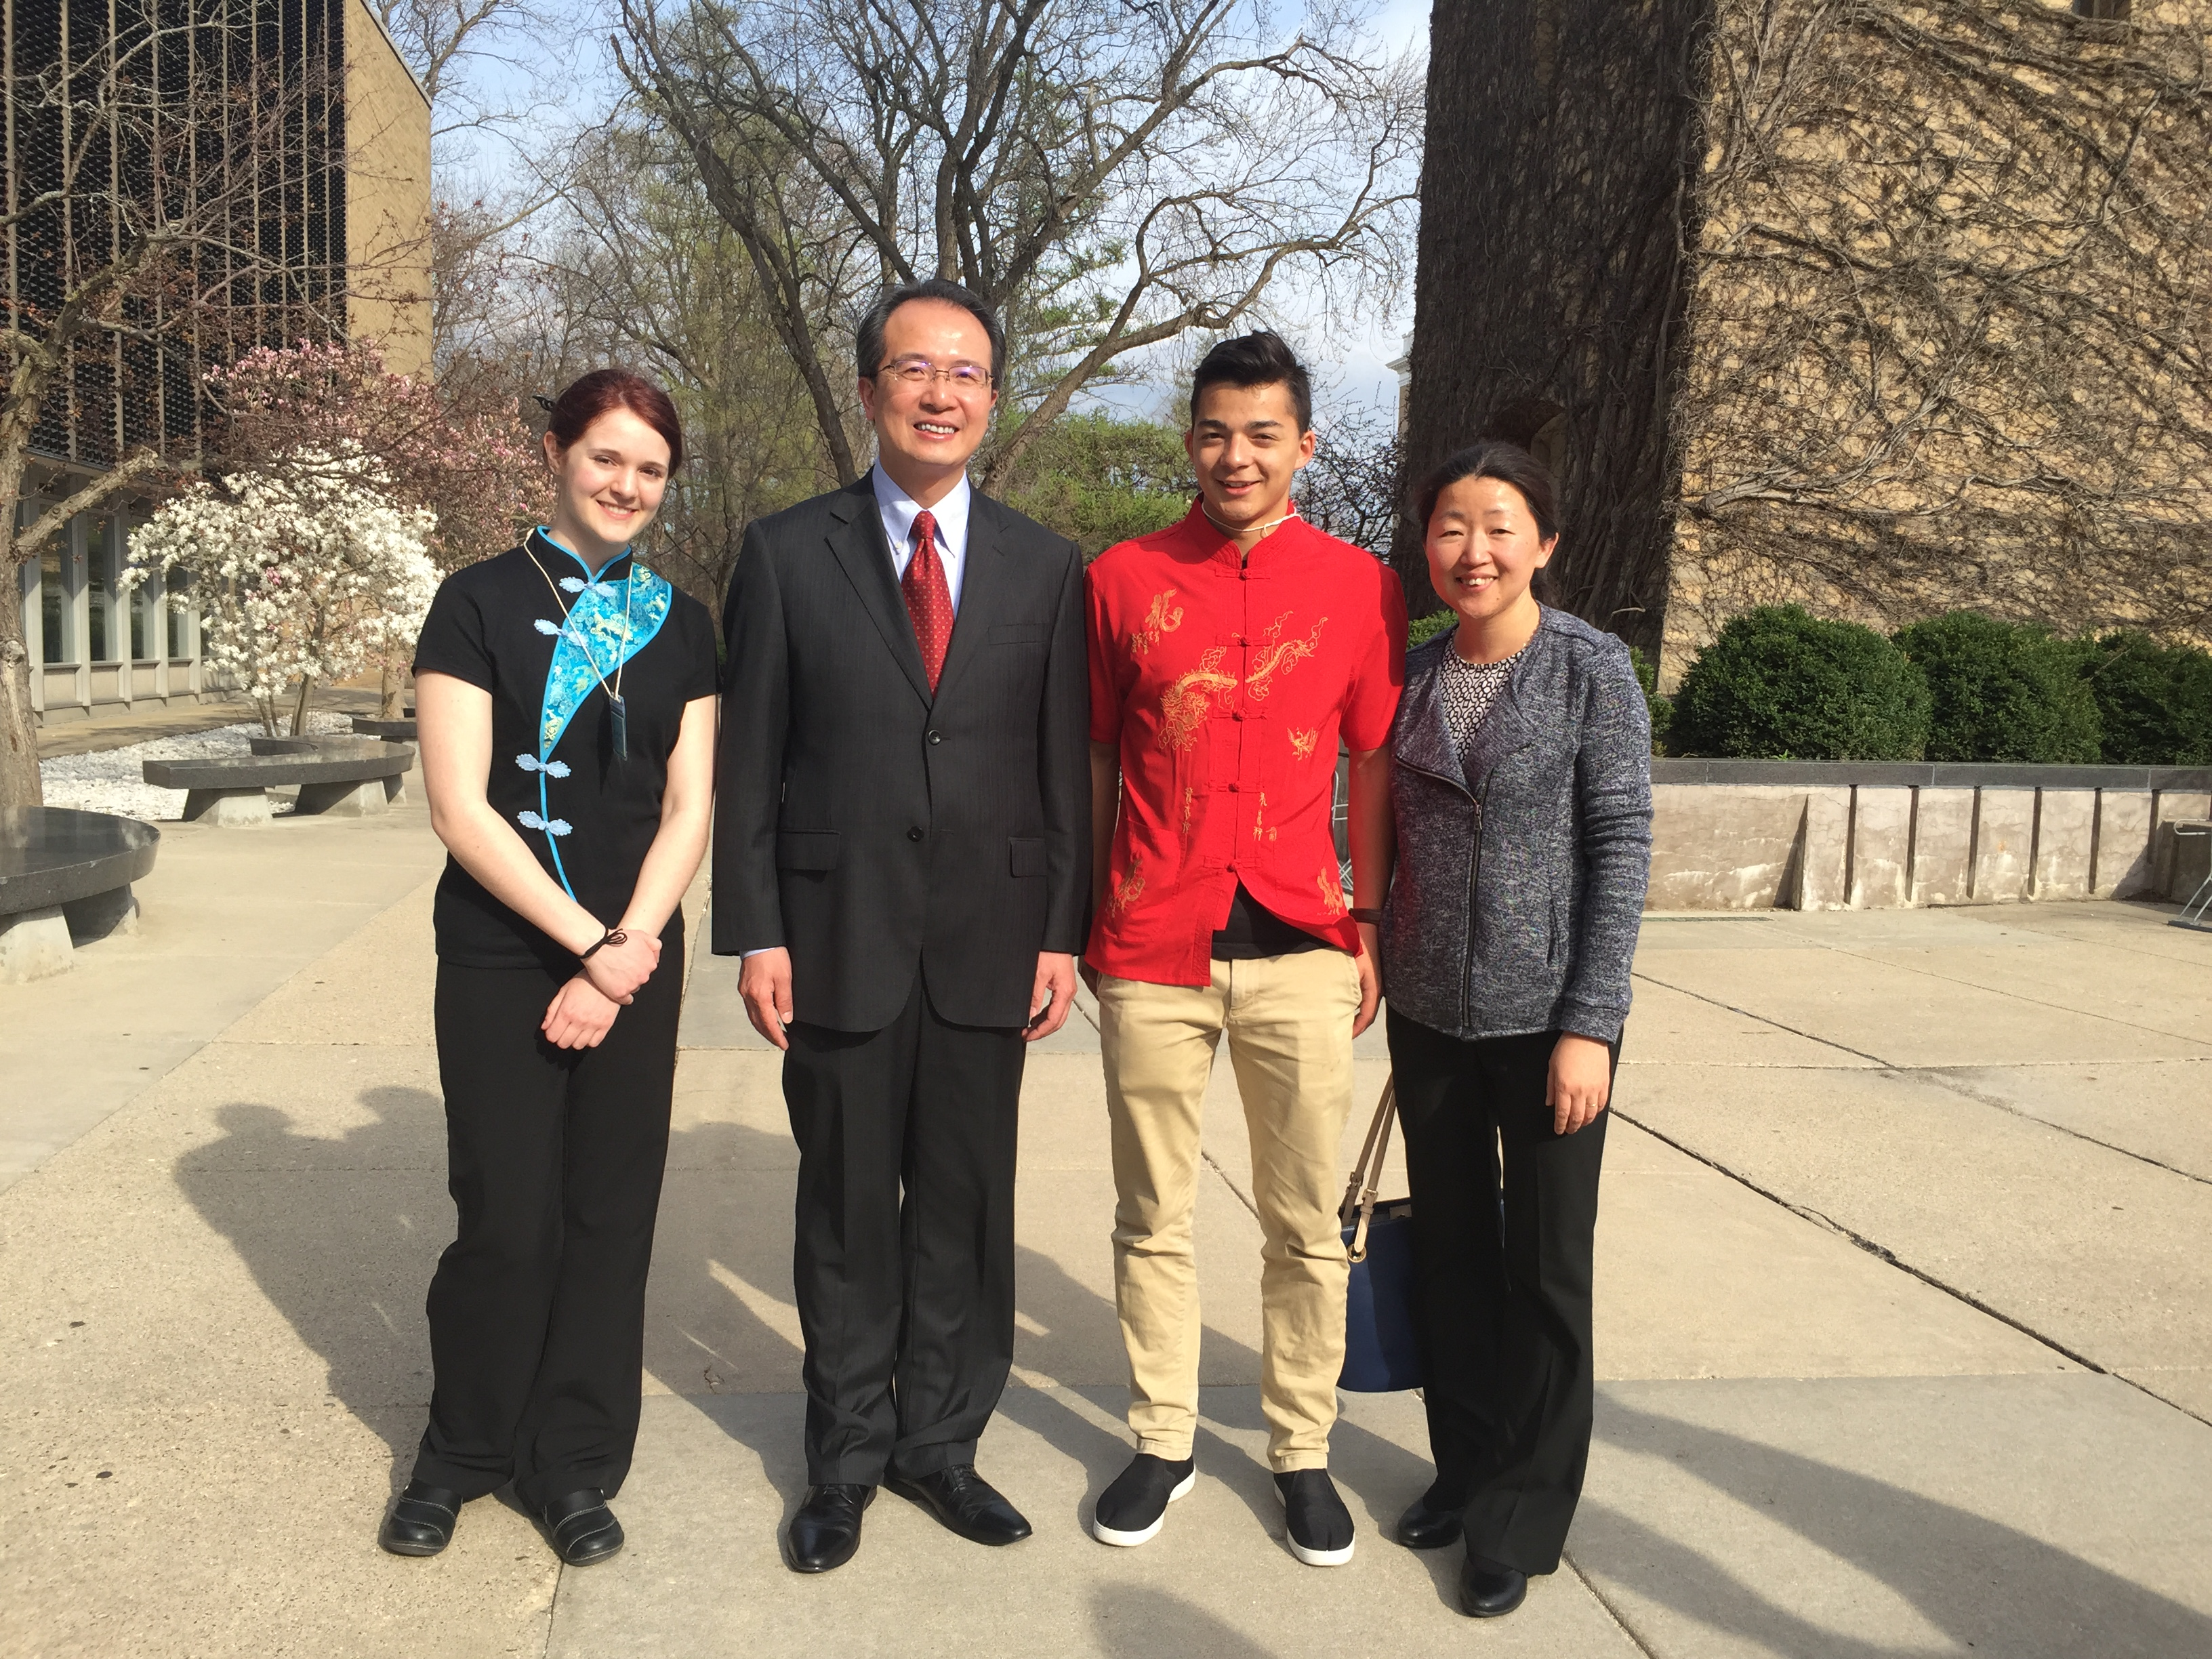 Photos from the 2017 U.S. Midwest Chinese Bridge Speech Contest on April 15 at UW-Madison